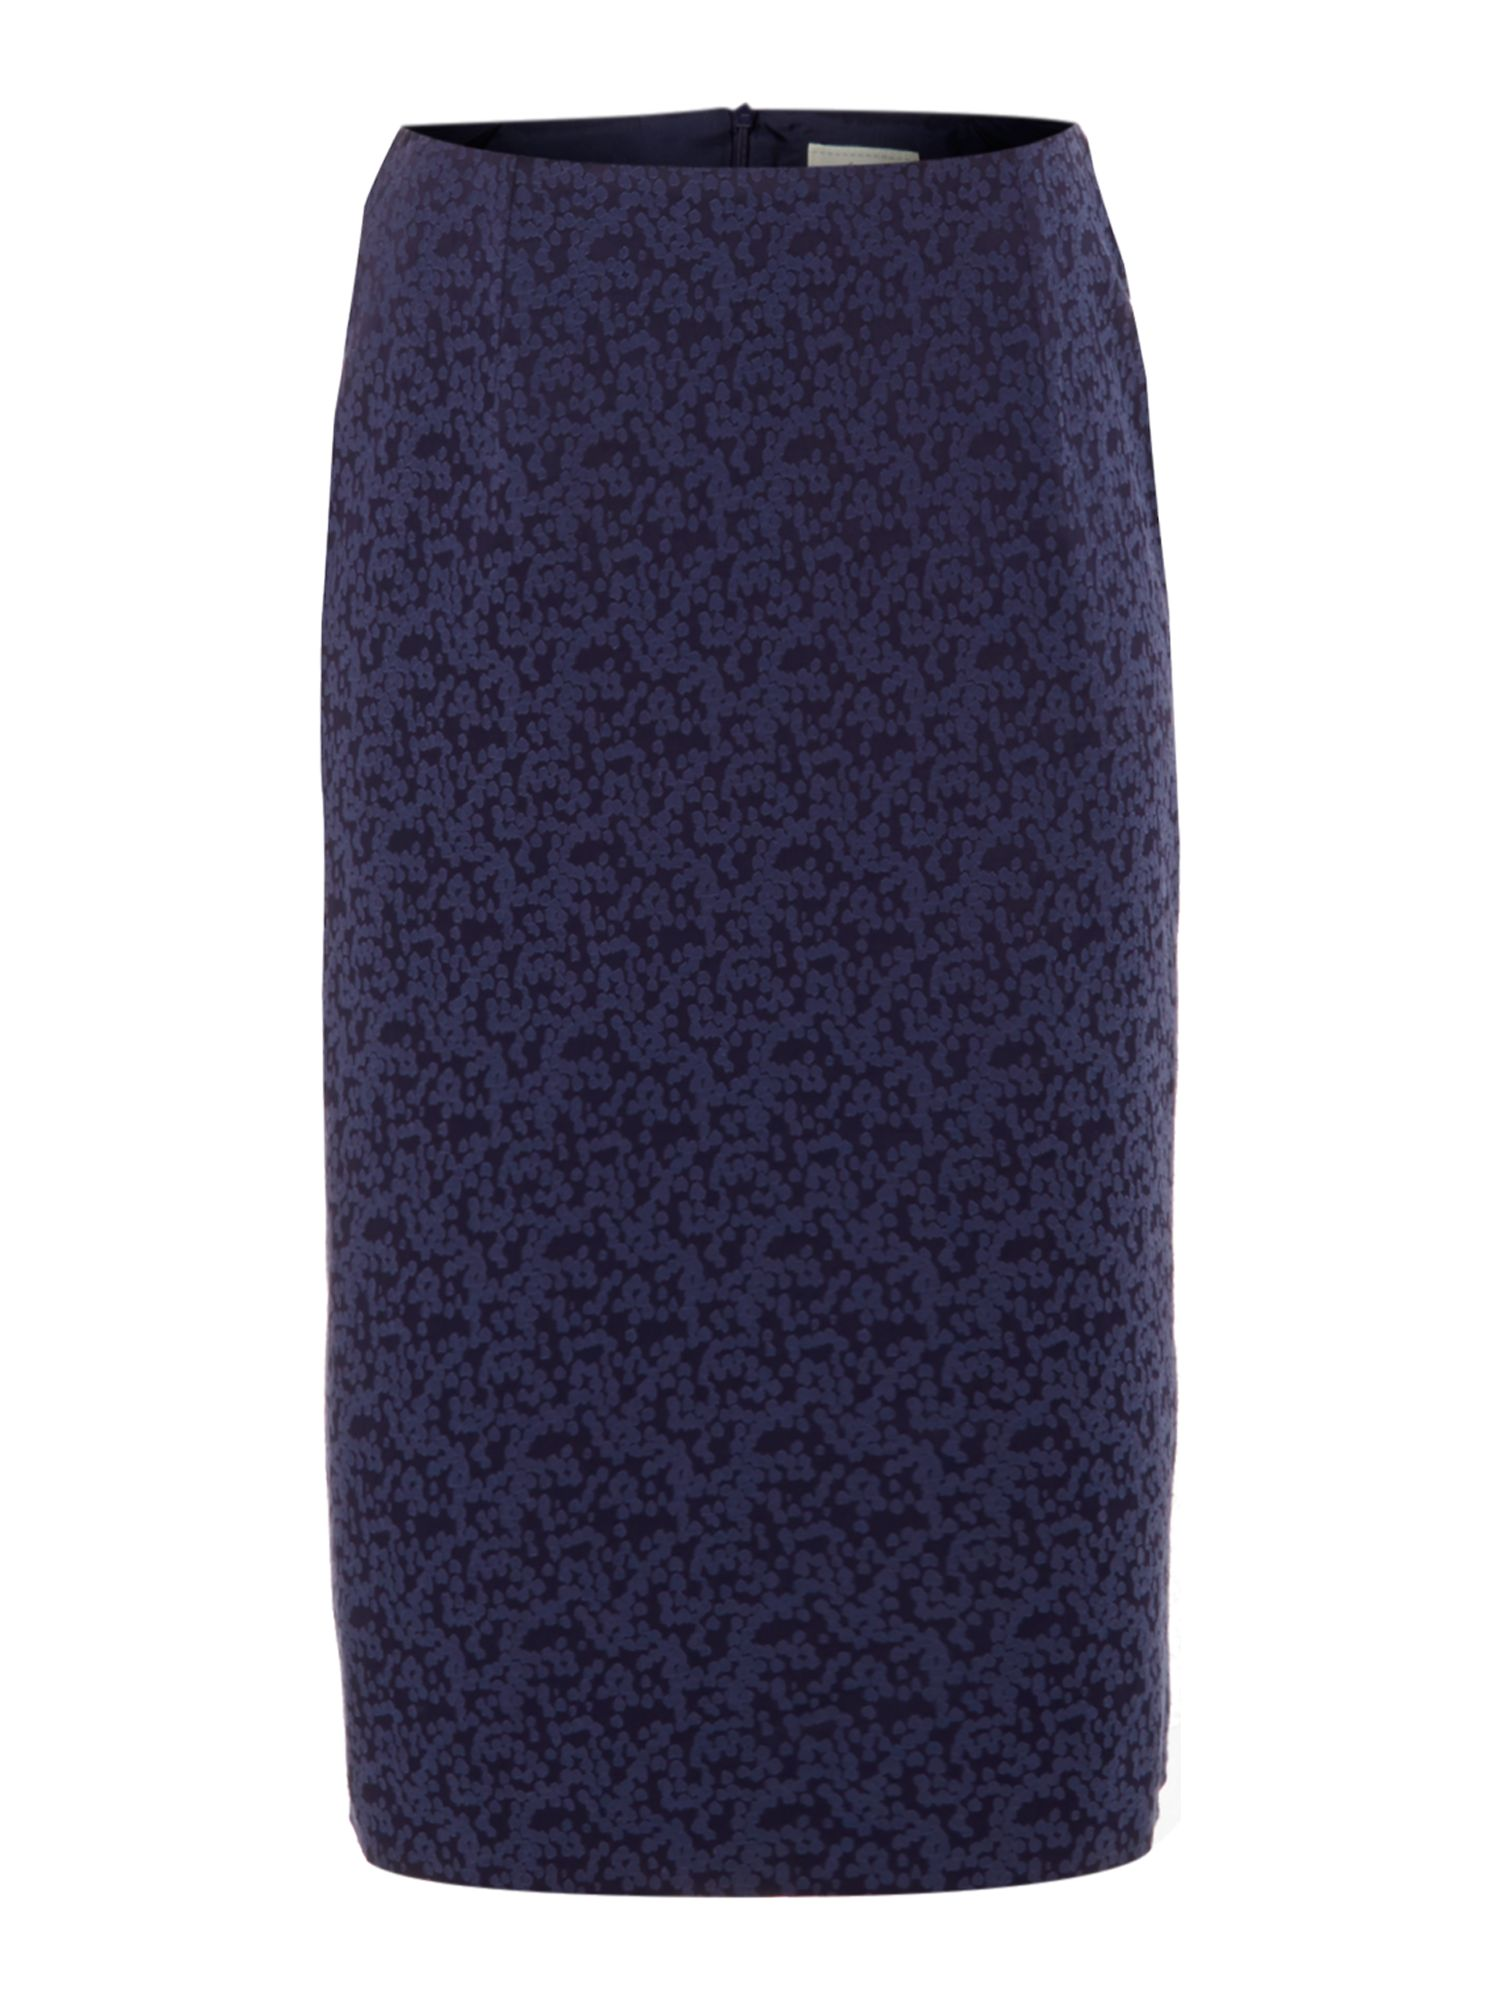 Connie spot jacquard skirt